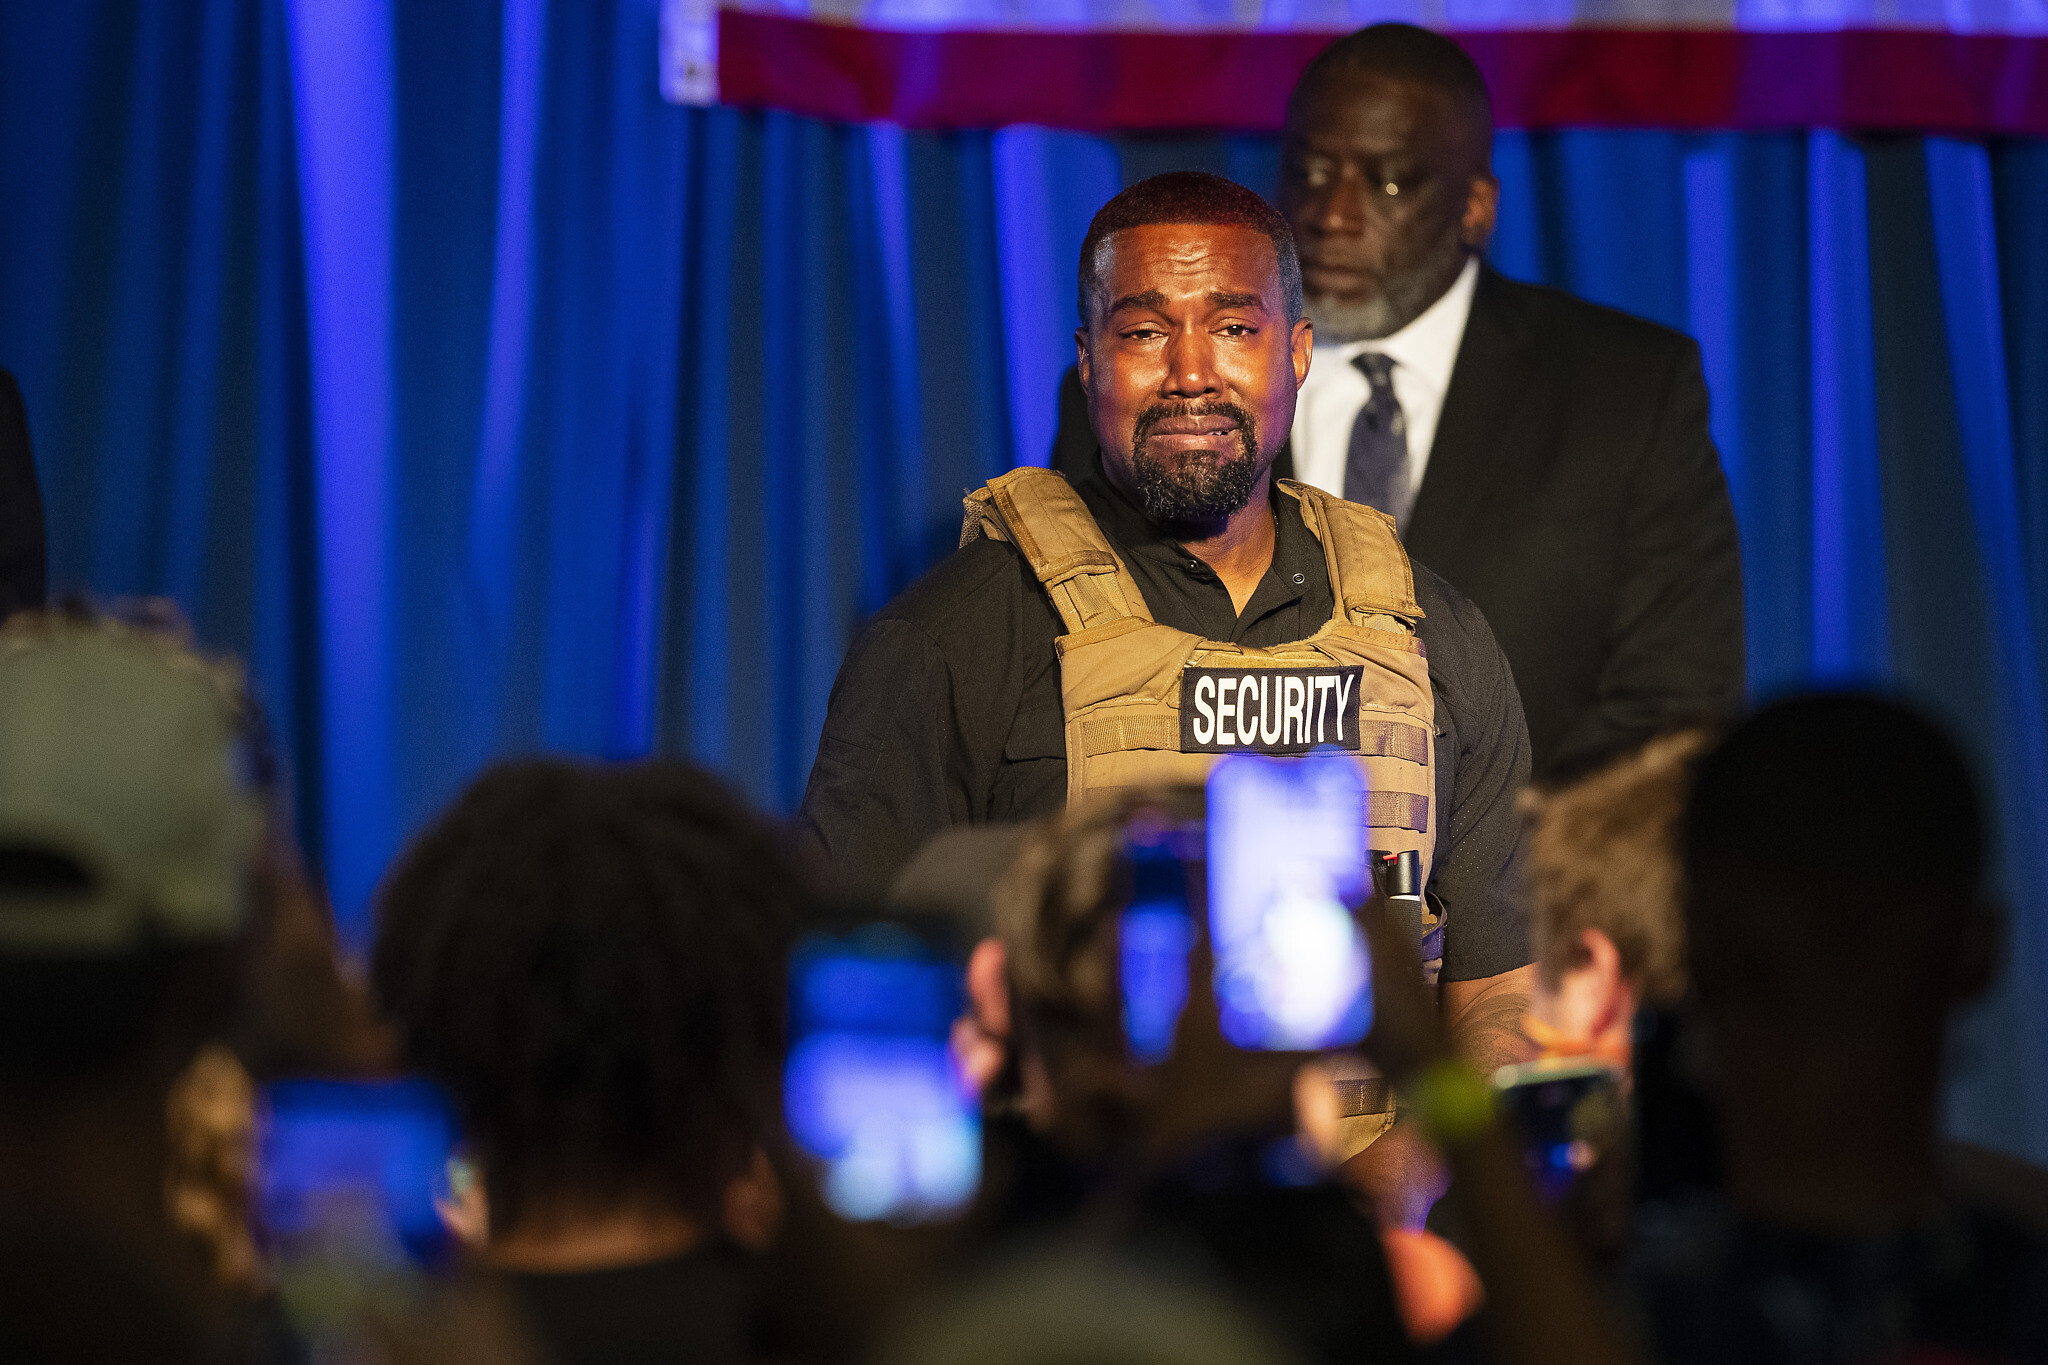 Kanye West launches presidential bid with chaotic rally